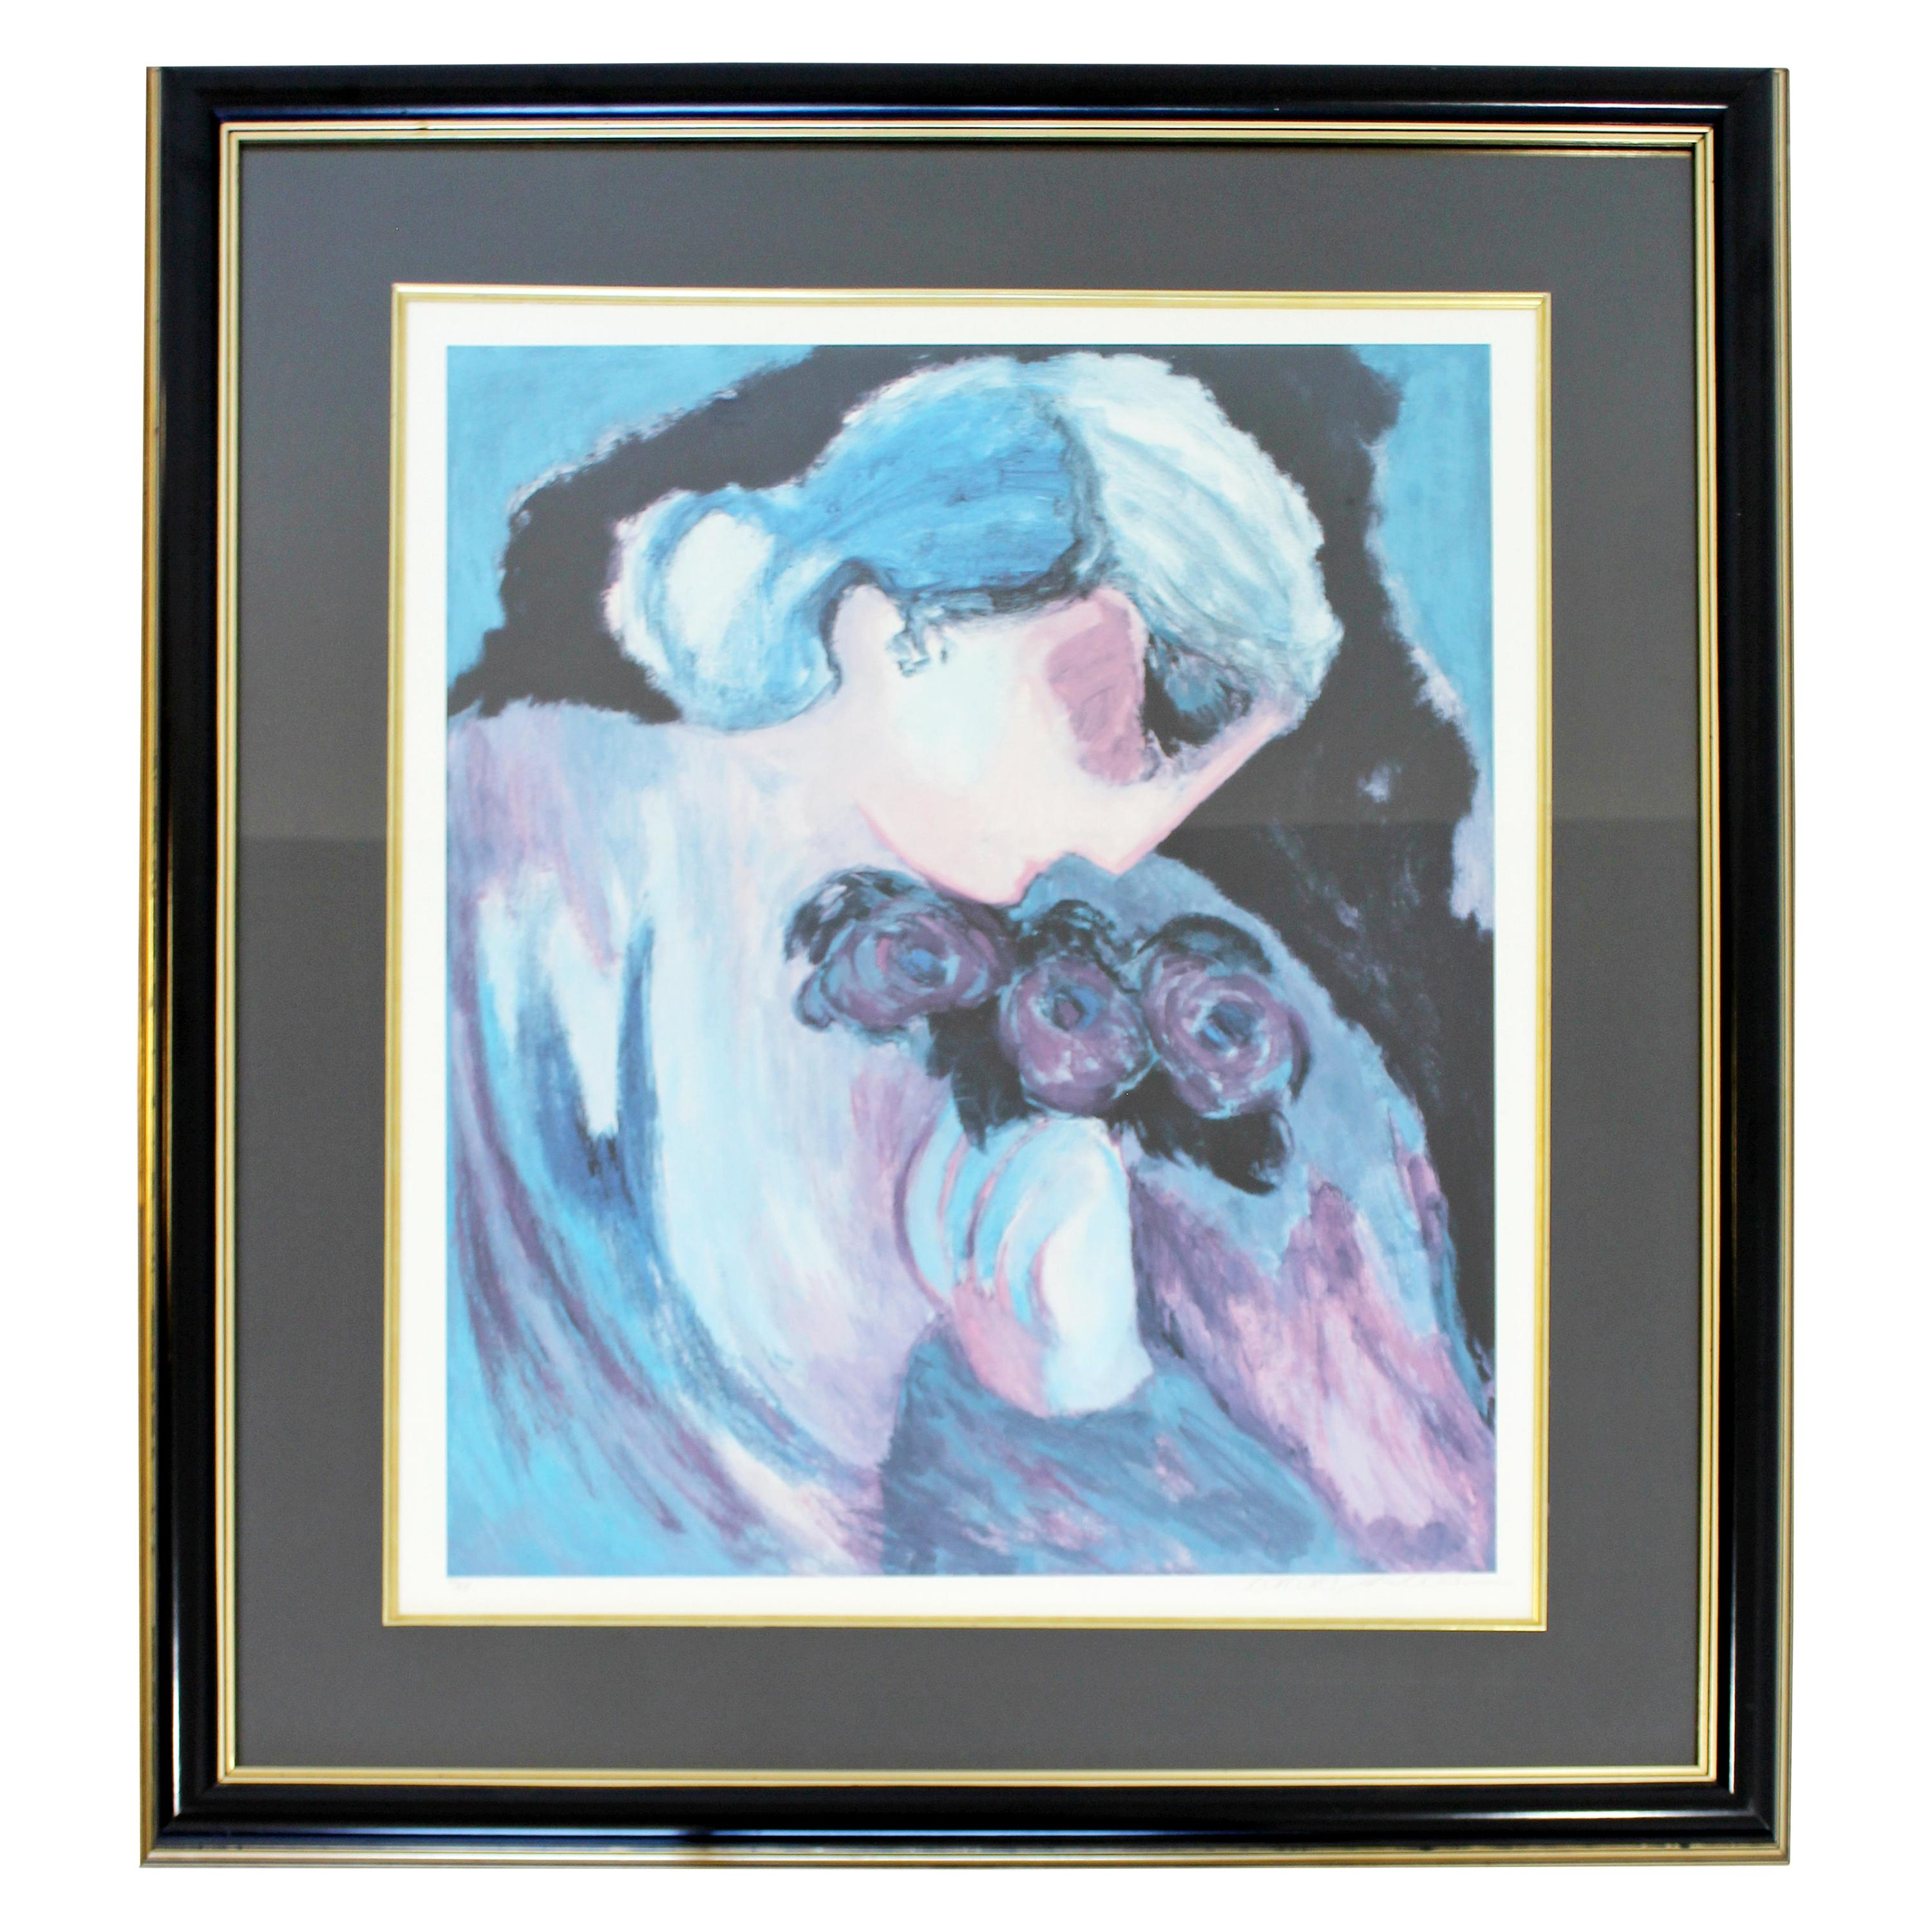 Mid-Century Modern Barbara a. Wood Framed Signed Lithograph 561/965